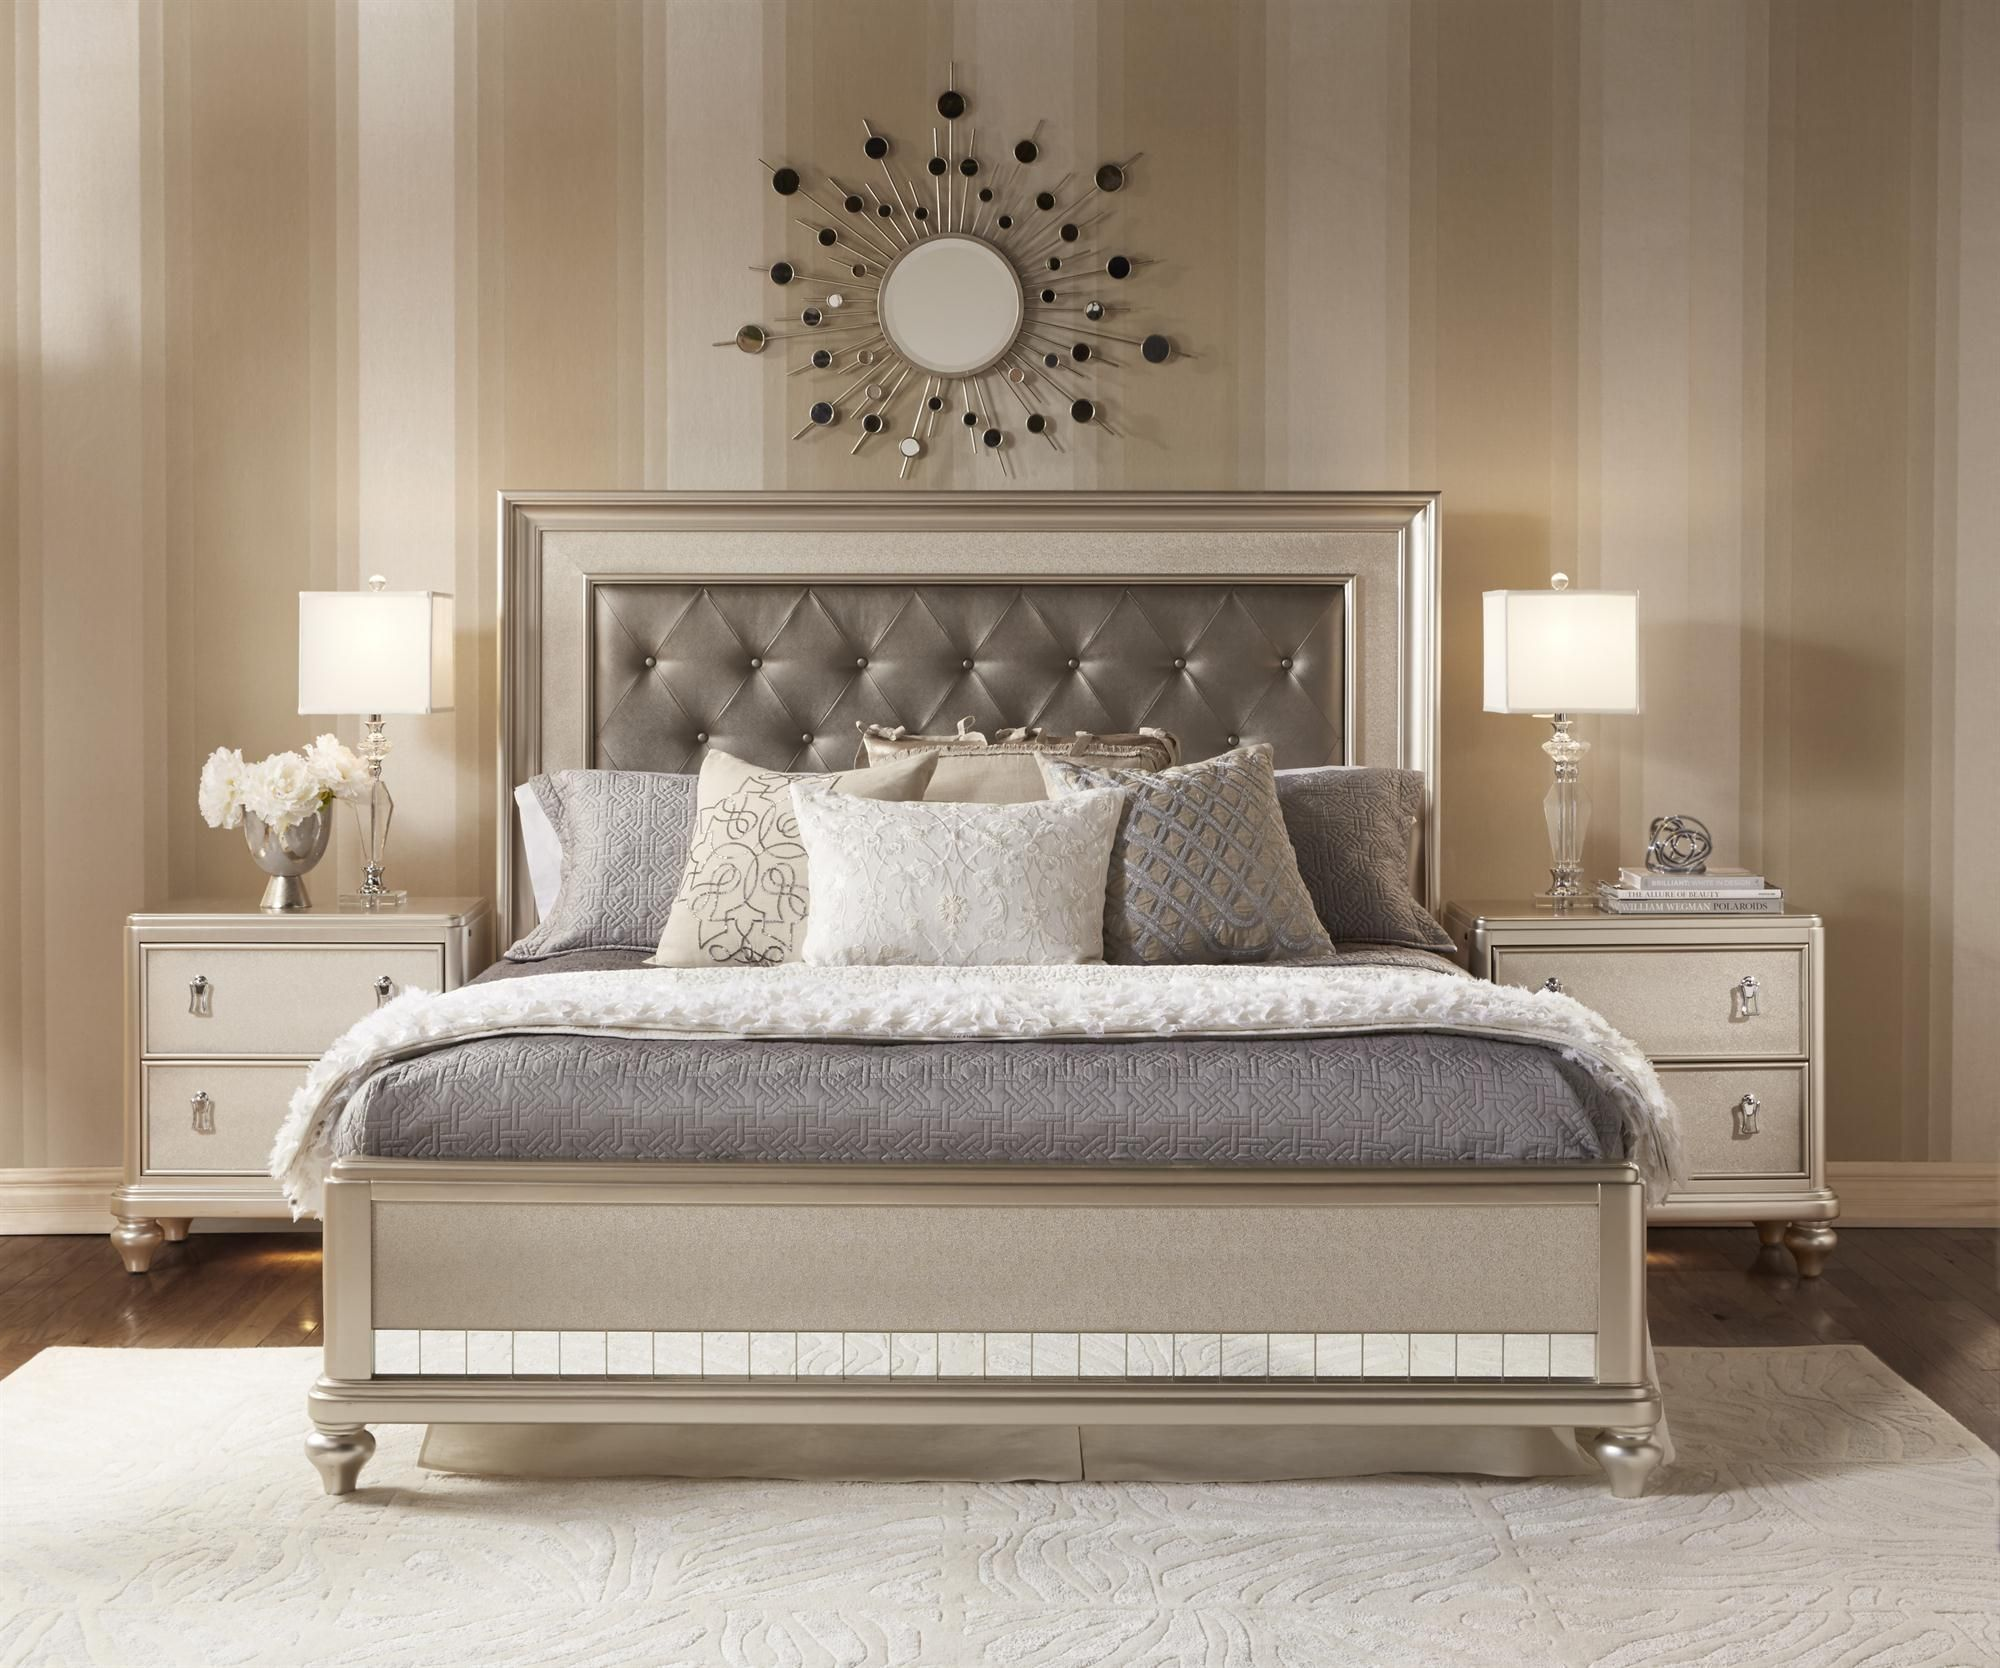 Delicieux Diva Queen Panel Bed W/ Tufted Headboard By Samuel Lawrence